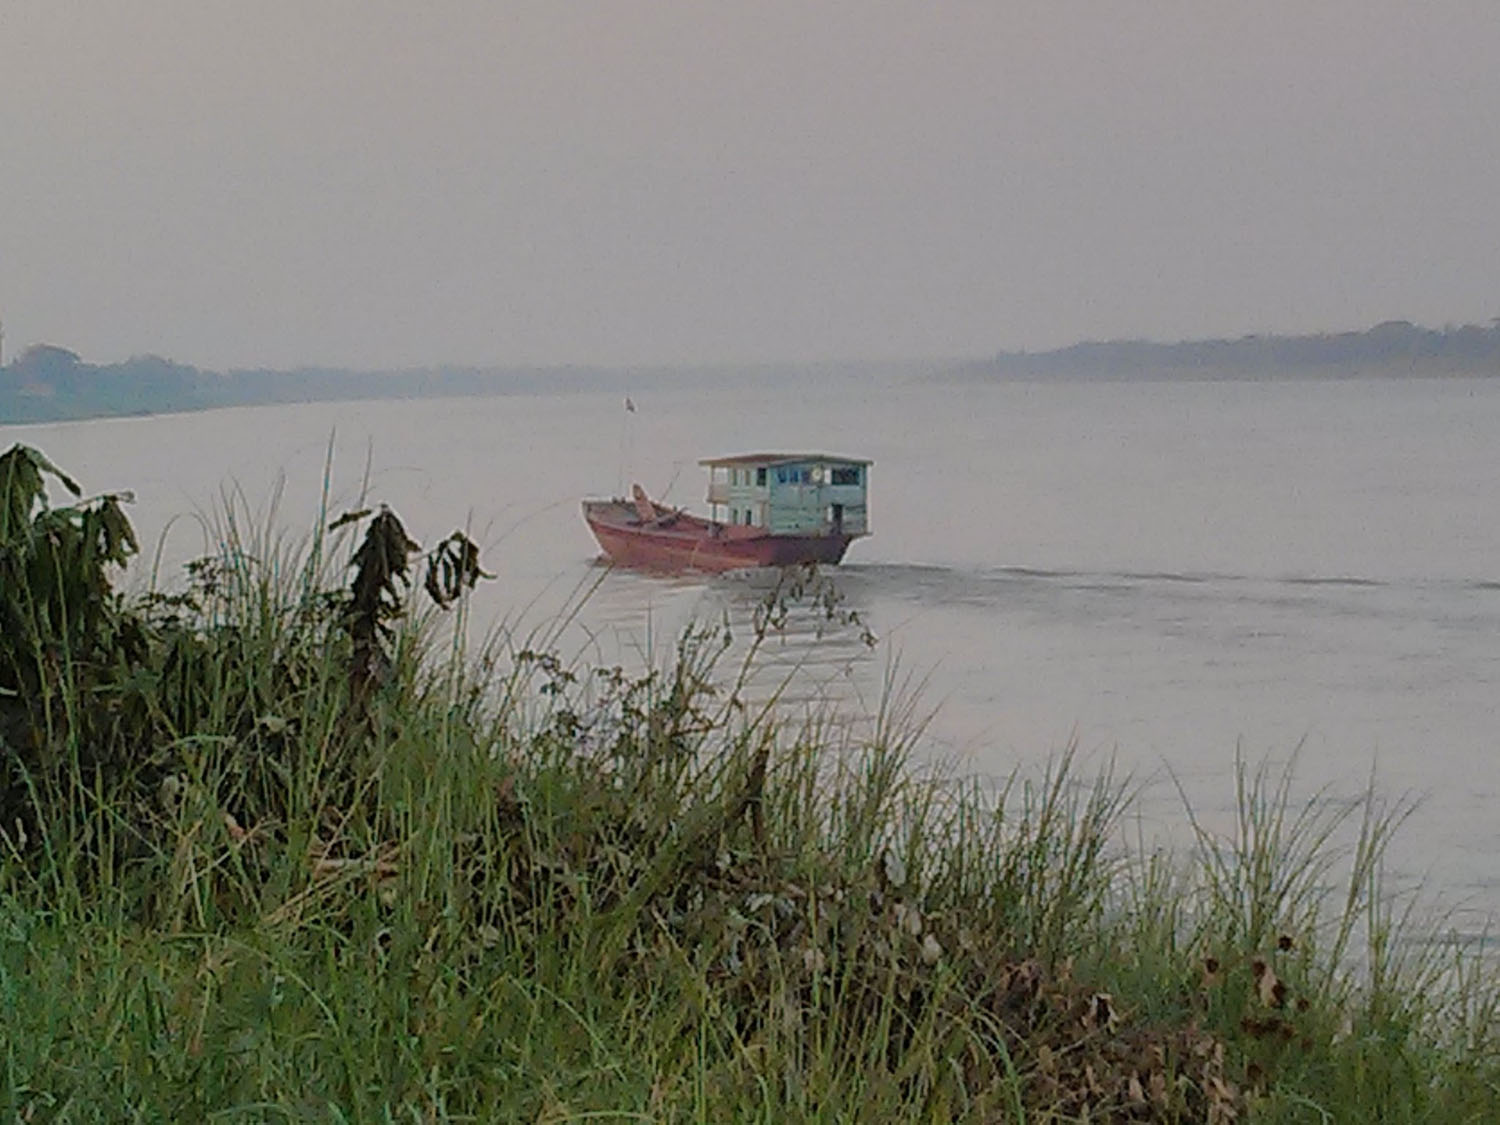 Strange boats on the Mekong River